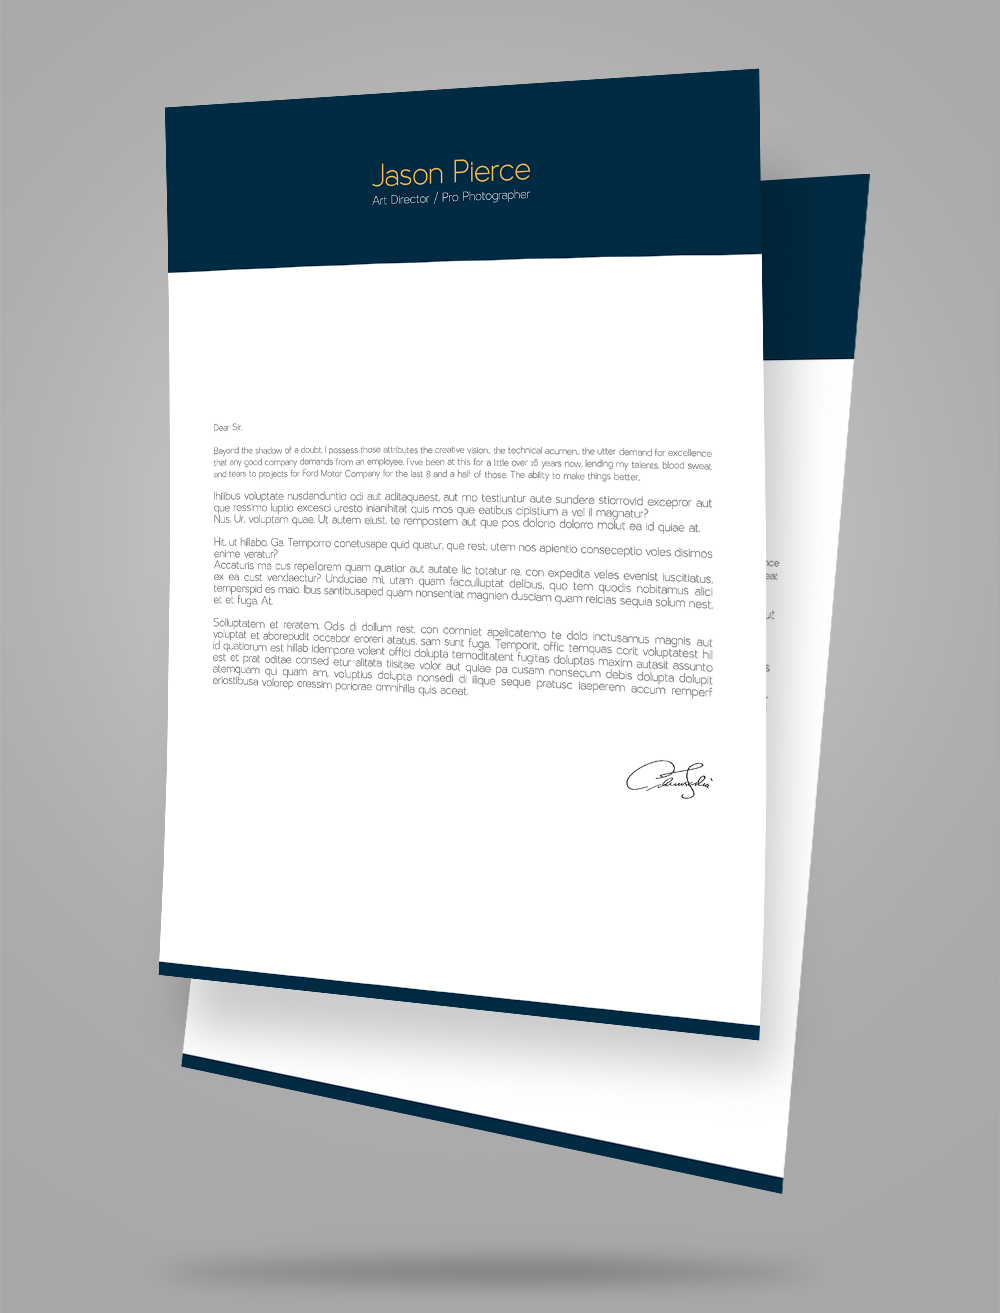 facsimile cover letter Picture Ideas References